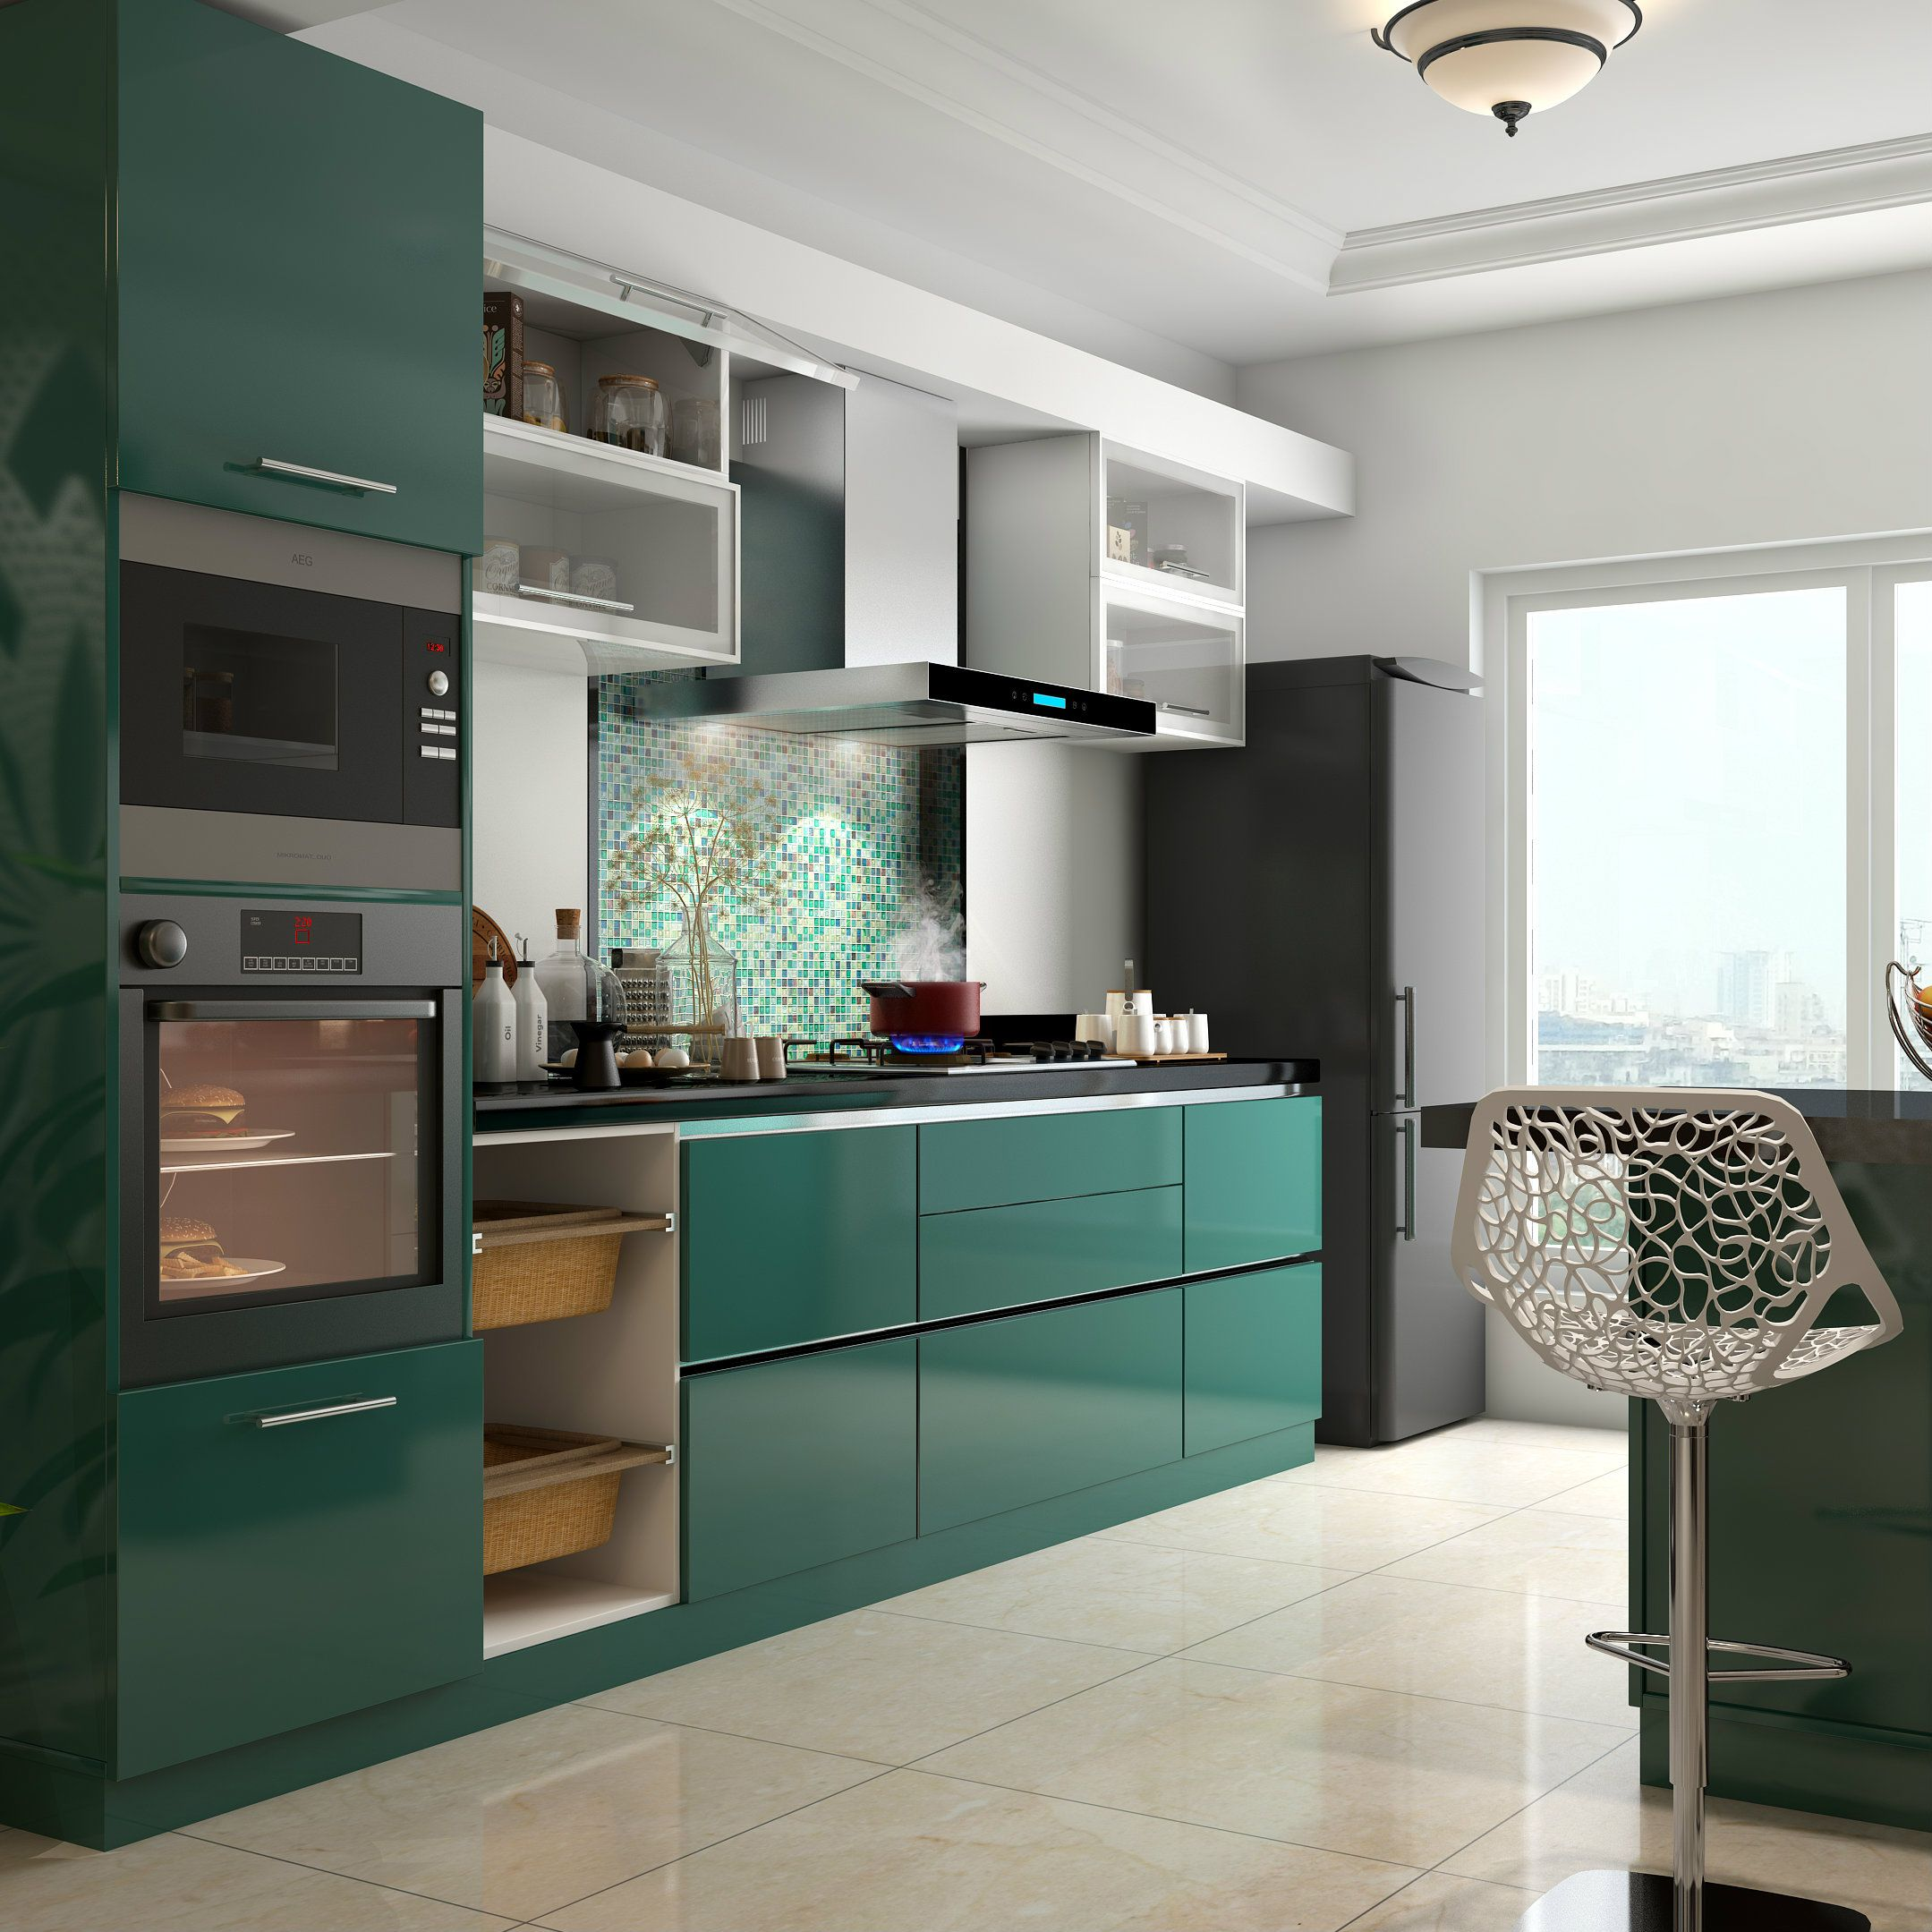 Kitchen Design Glossy Green Cabinets Infuse Vitality To This Kitchen Modular